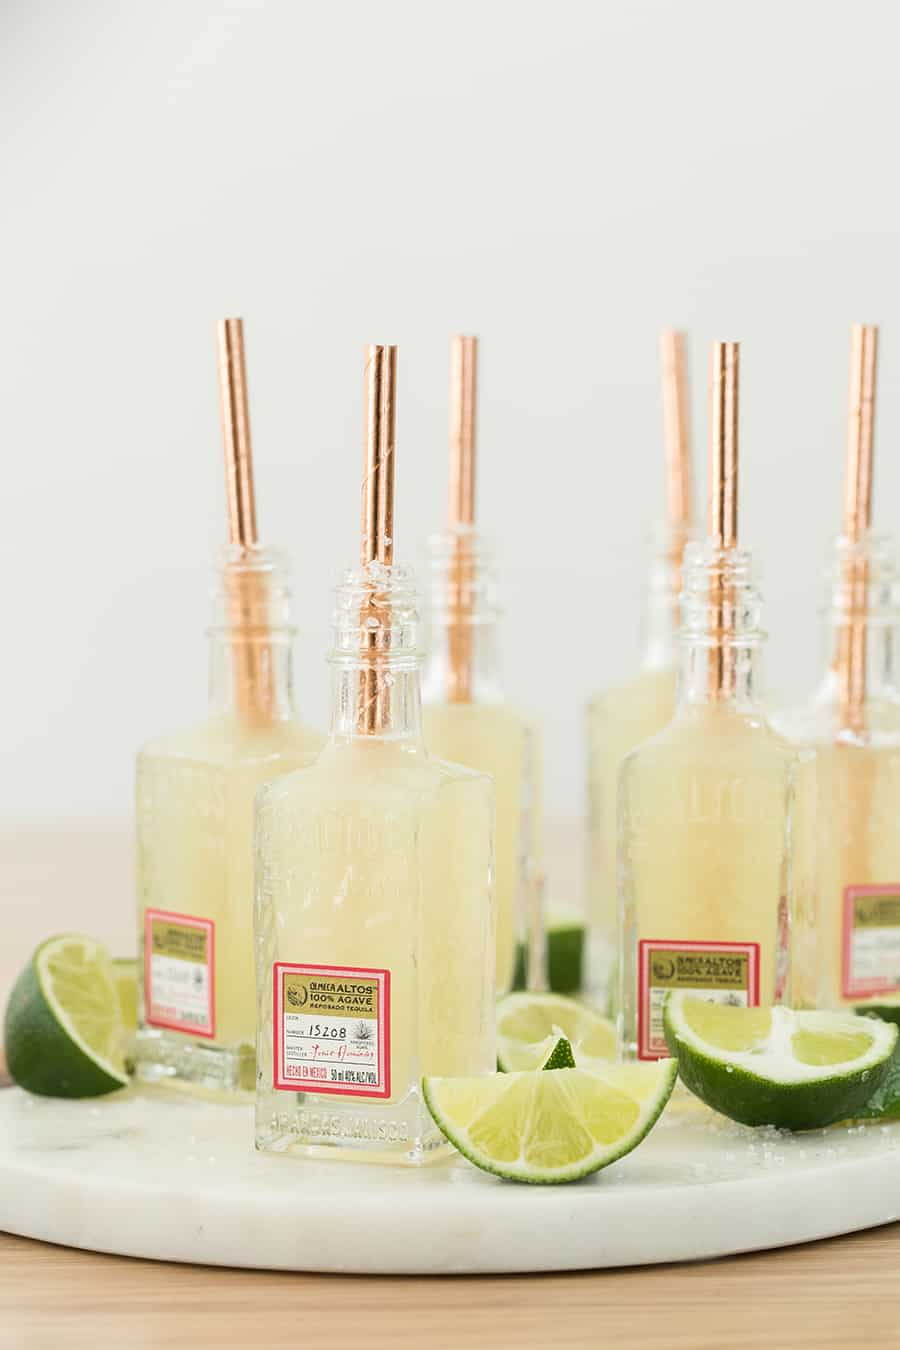 Mini margaritas served in tiny tequila bottles with a lime wedge and copper straw.